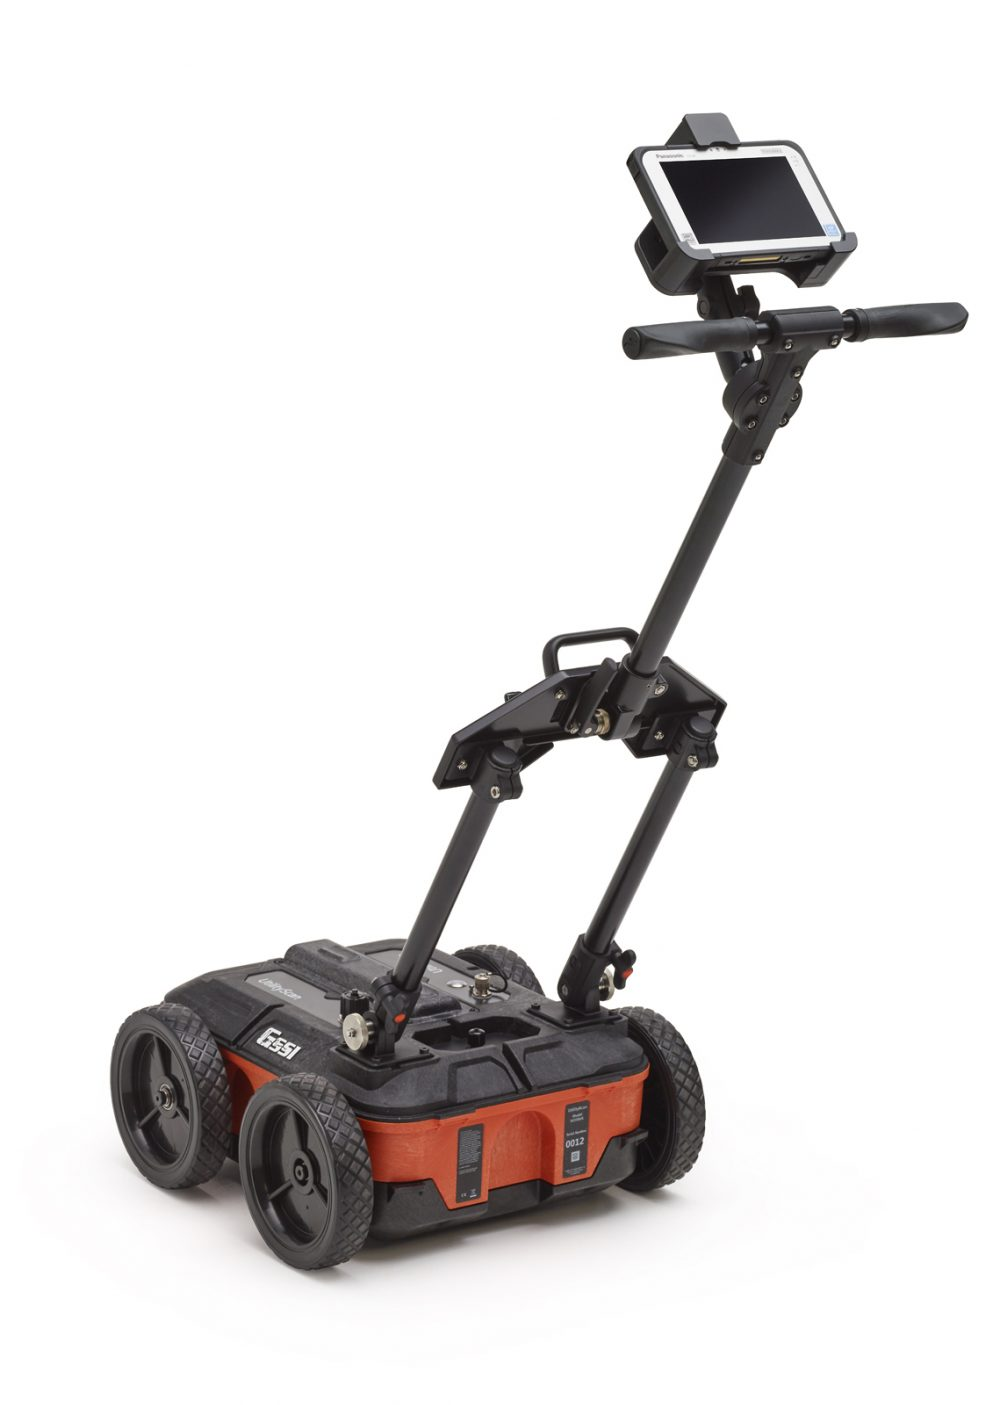 GSSI will showcase their latest GPR Technology at World of Concrete 2019